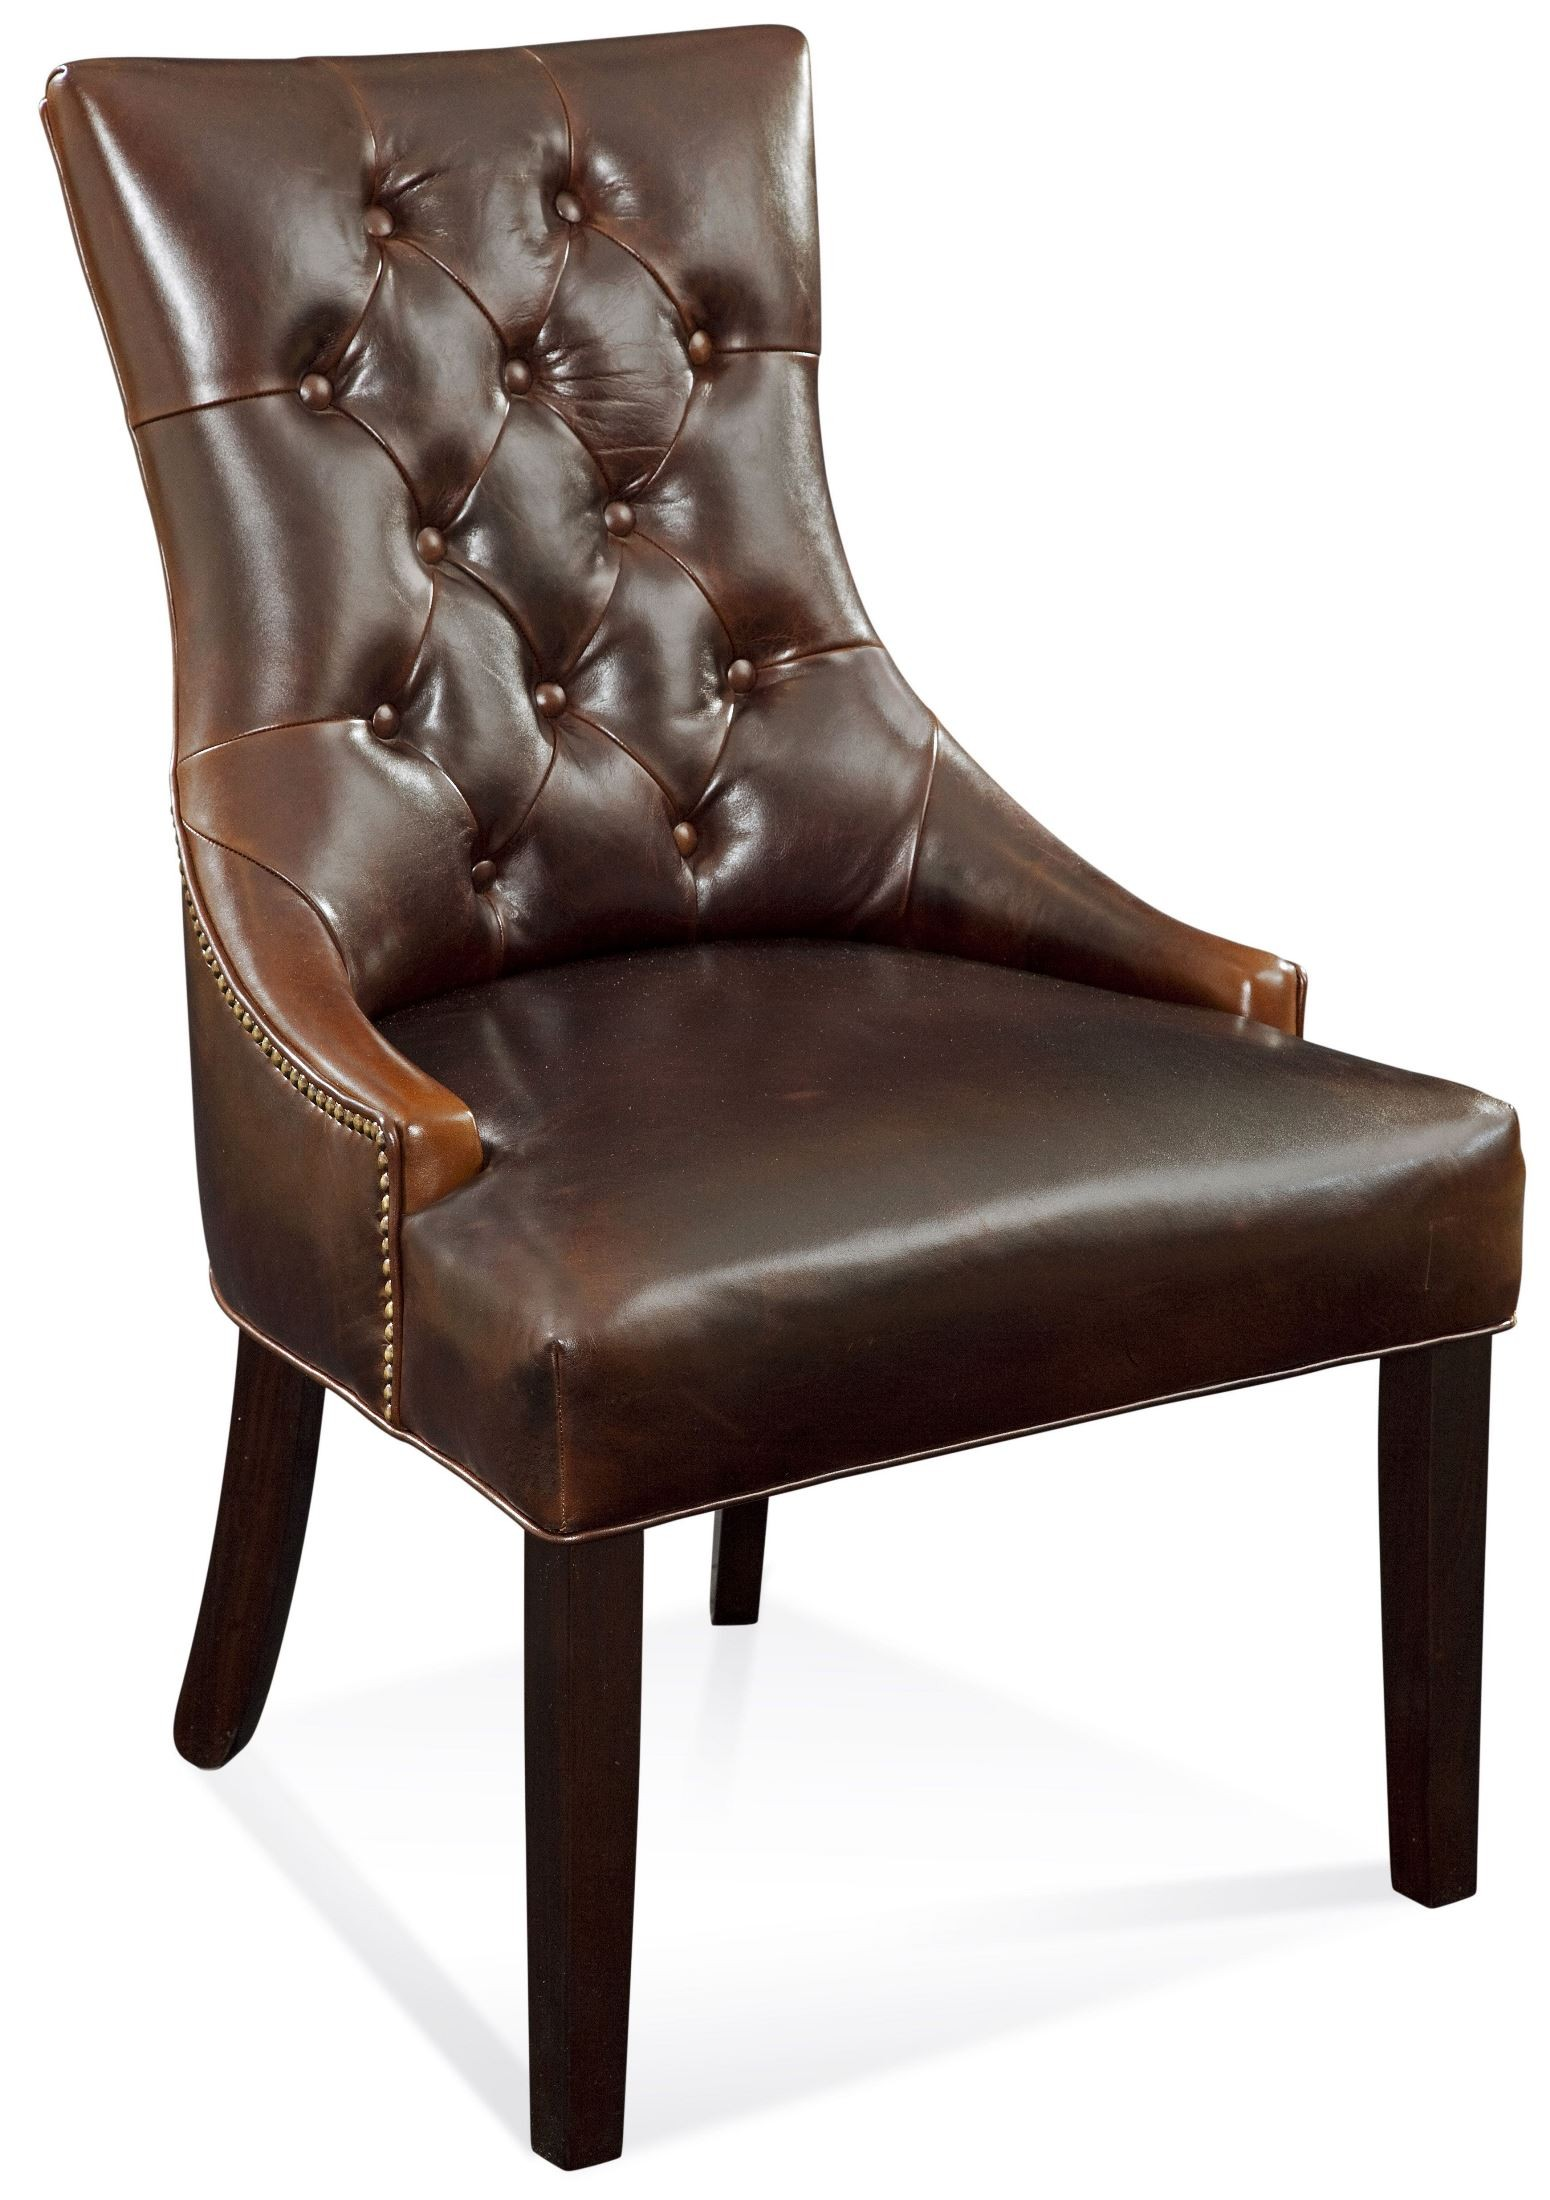 Tufted Leather Chair Fortnum Brown Leather Tufted Nailhead Parson Chair Dpch15